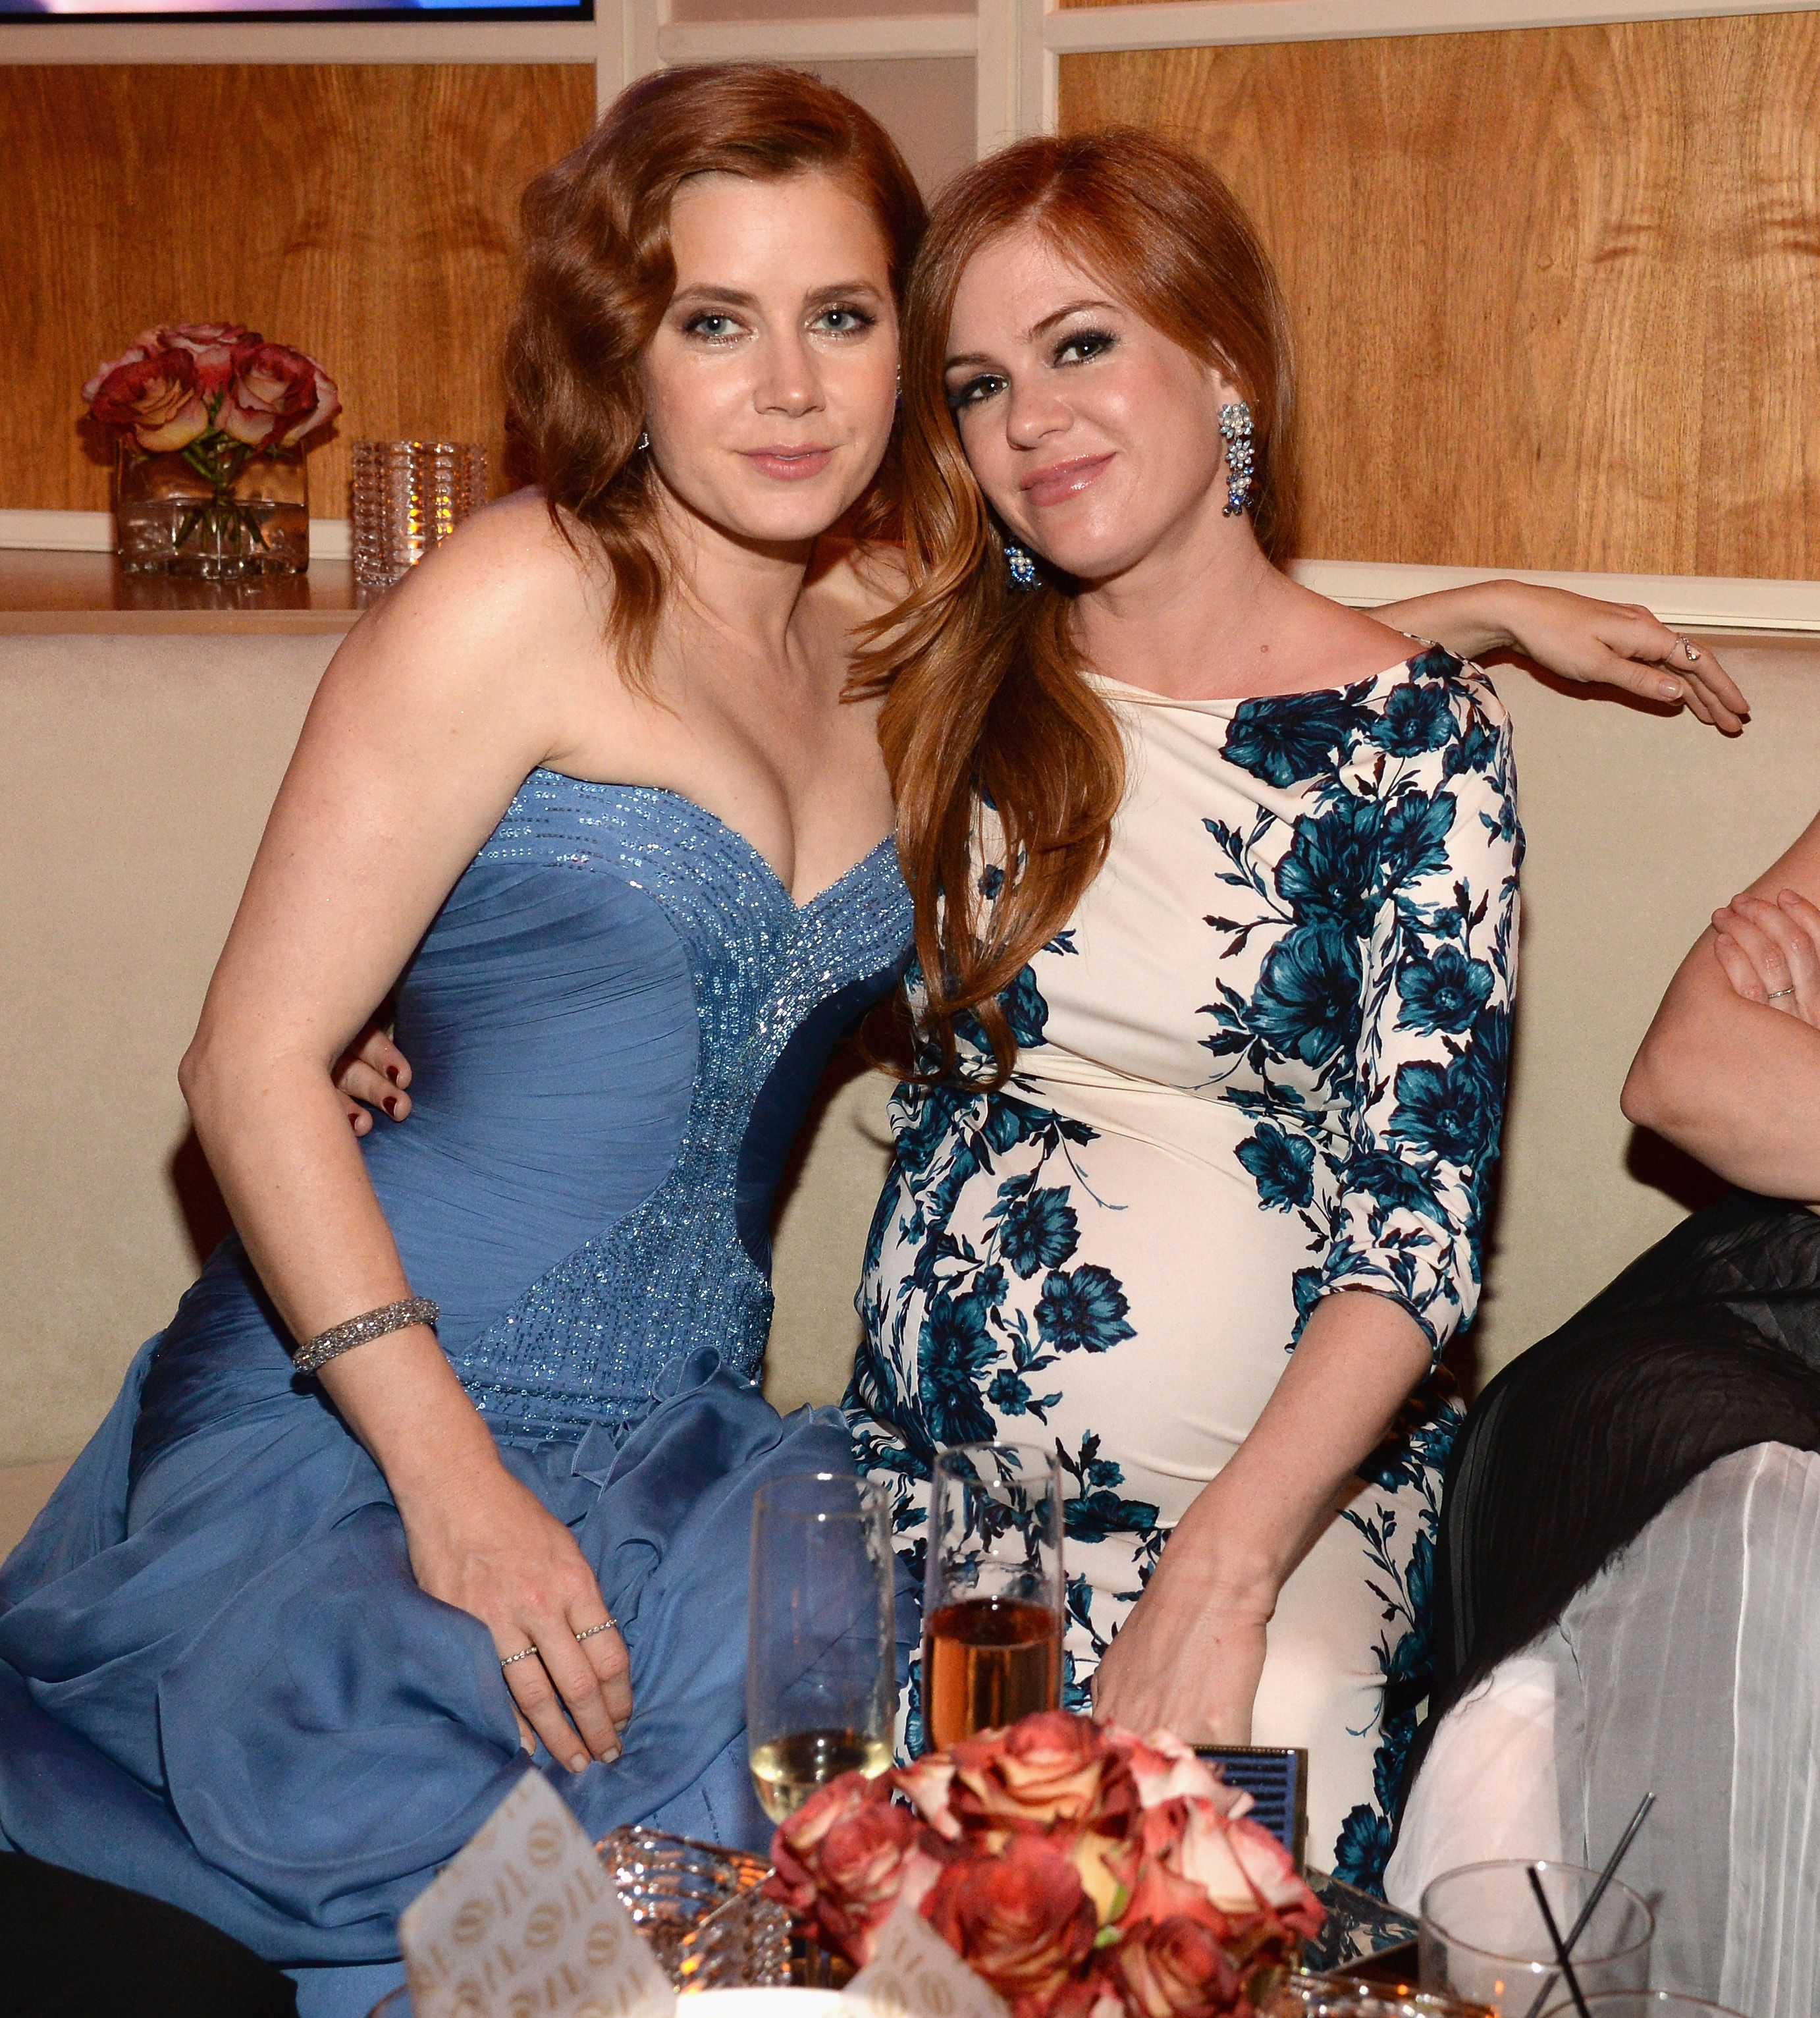 Amy Adams and Isla Fisher Isla Fisher says she's frequently mistaken for Amy Adams—even by other celebrities. She shared a story with Jimmy Kimmel about being mistaken for the Enchanted star by Lady Gaga at the 2014 Vanity Fair Oscar party.